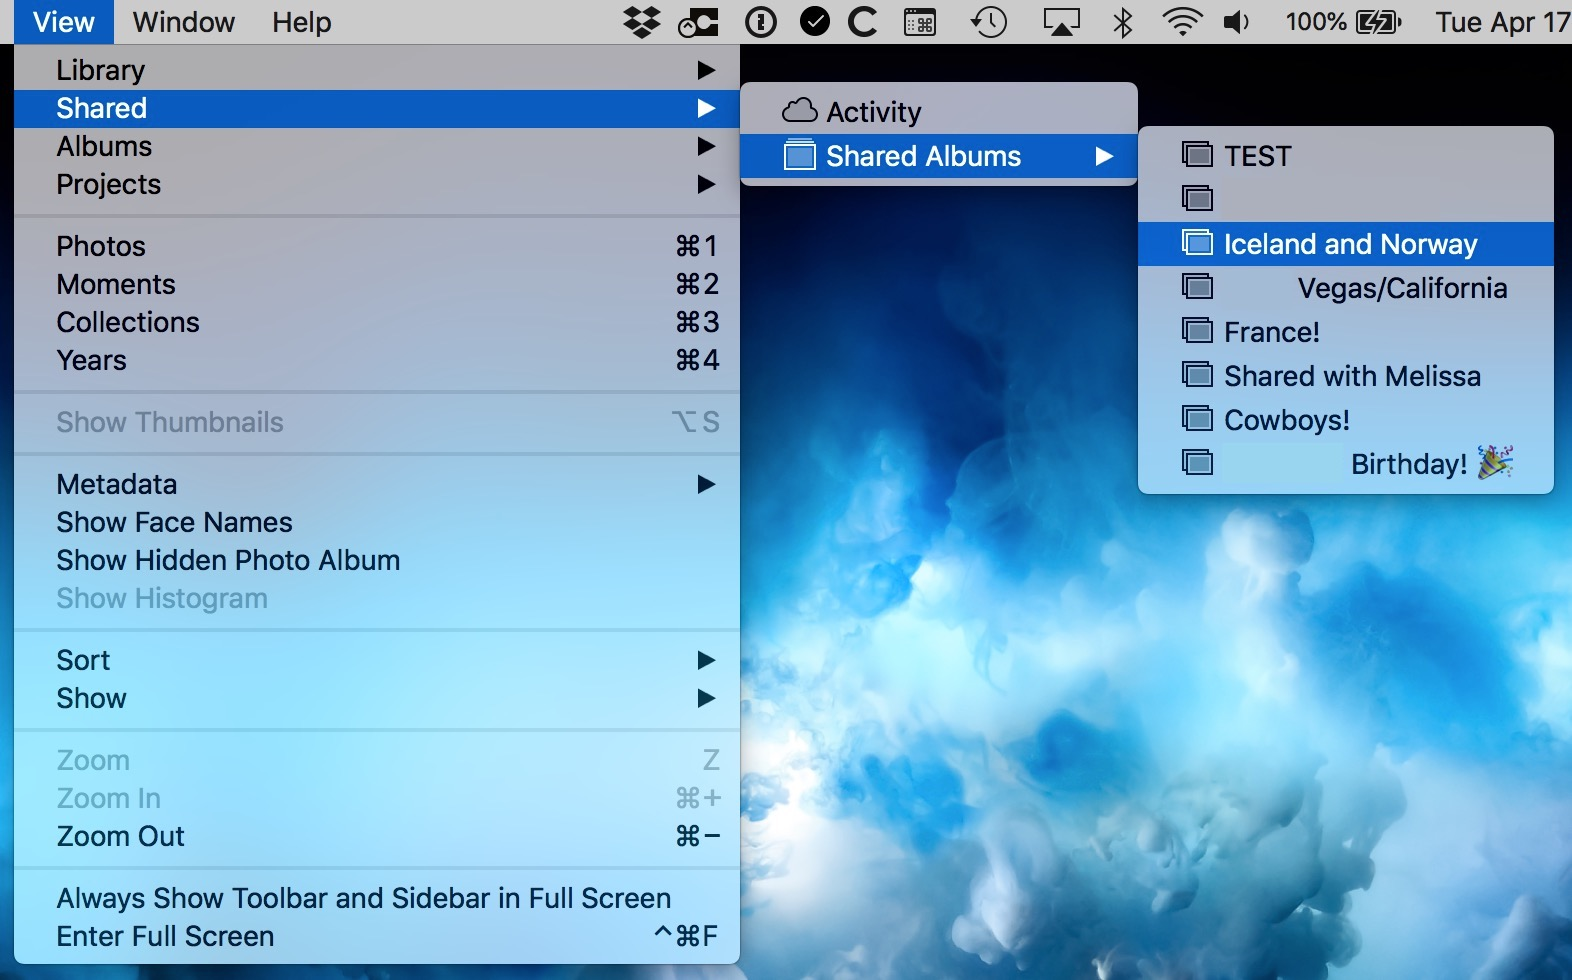 View Menu in Photos on macOS showing Shared Albums options